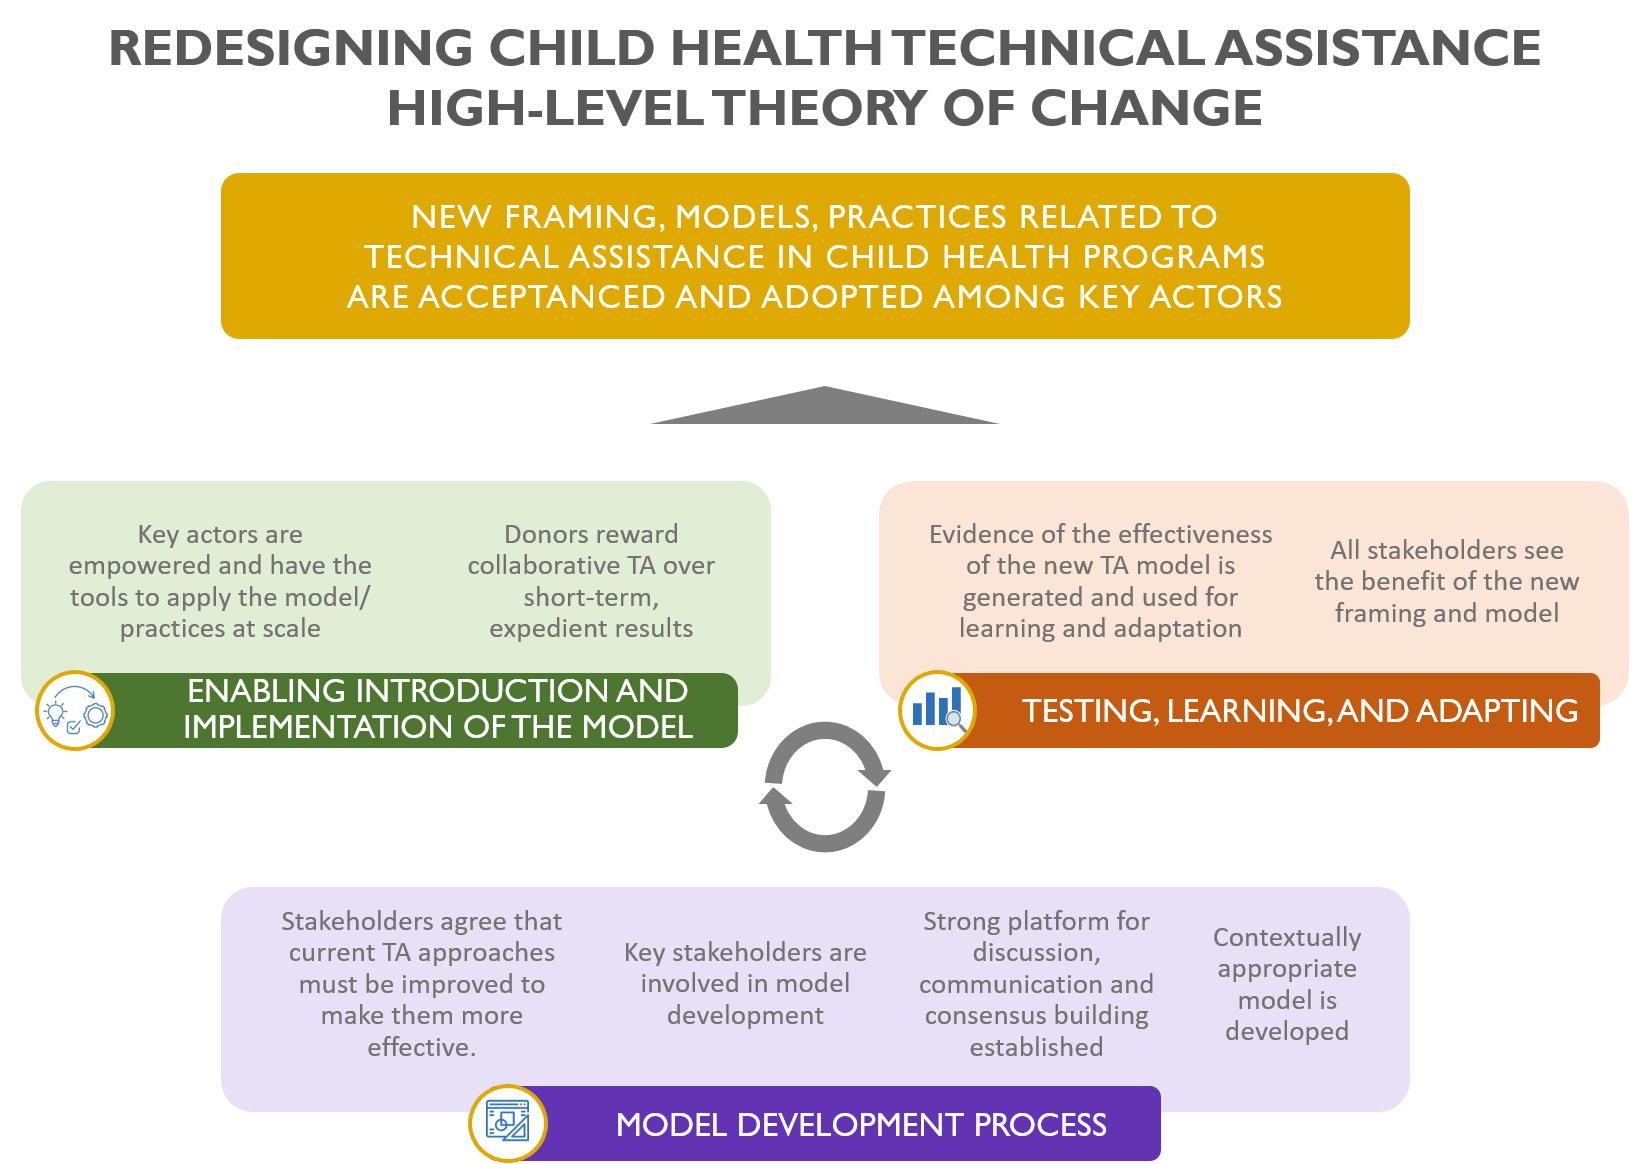 High level theory of change: model development process; enabling the intro and implementation; testing, learning and adapting to framing, models and practices